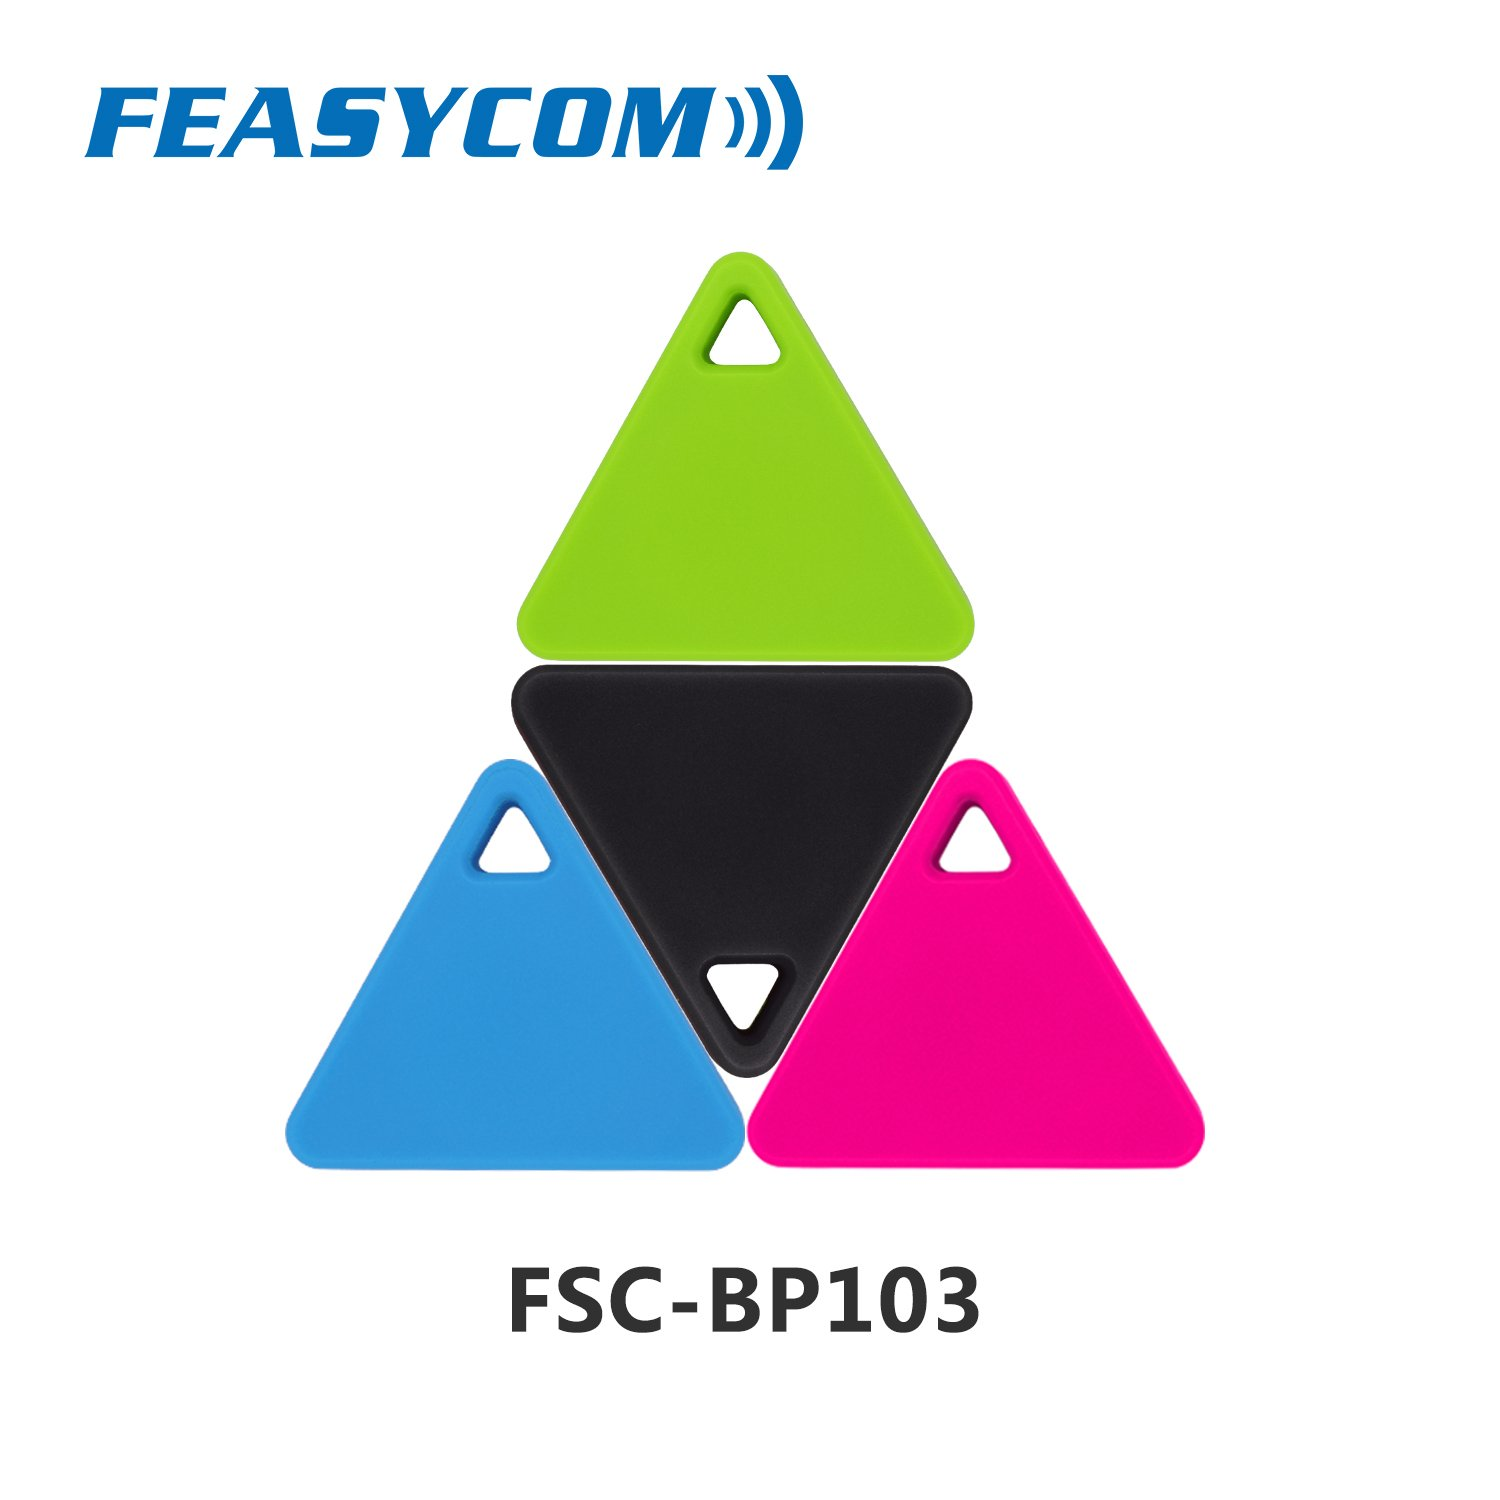 FeasyBeacon Mini Bluetooth 5.0 Proximity Low Energy Beacon with Eddystone, iBeacon and AltBeacon,Android & iOS programmable Shenzhen Feasycom Technology Co. LTD FSC-BP103